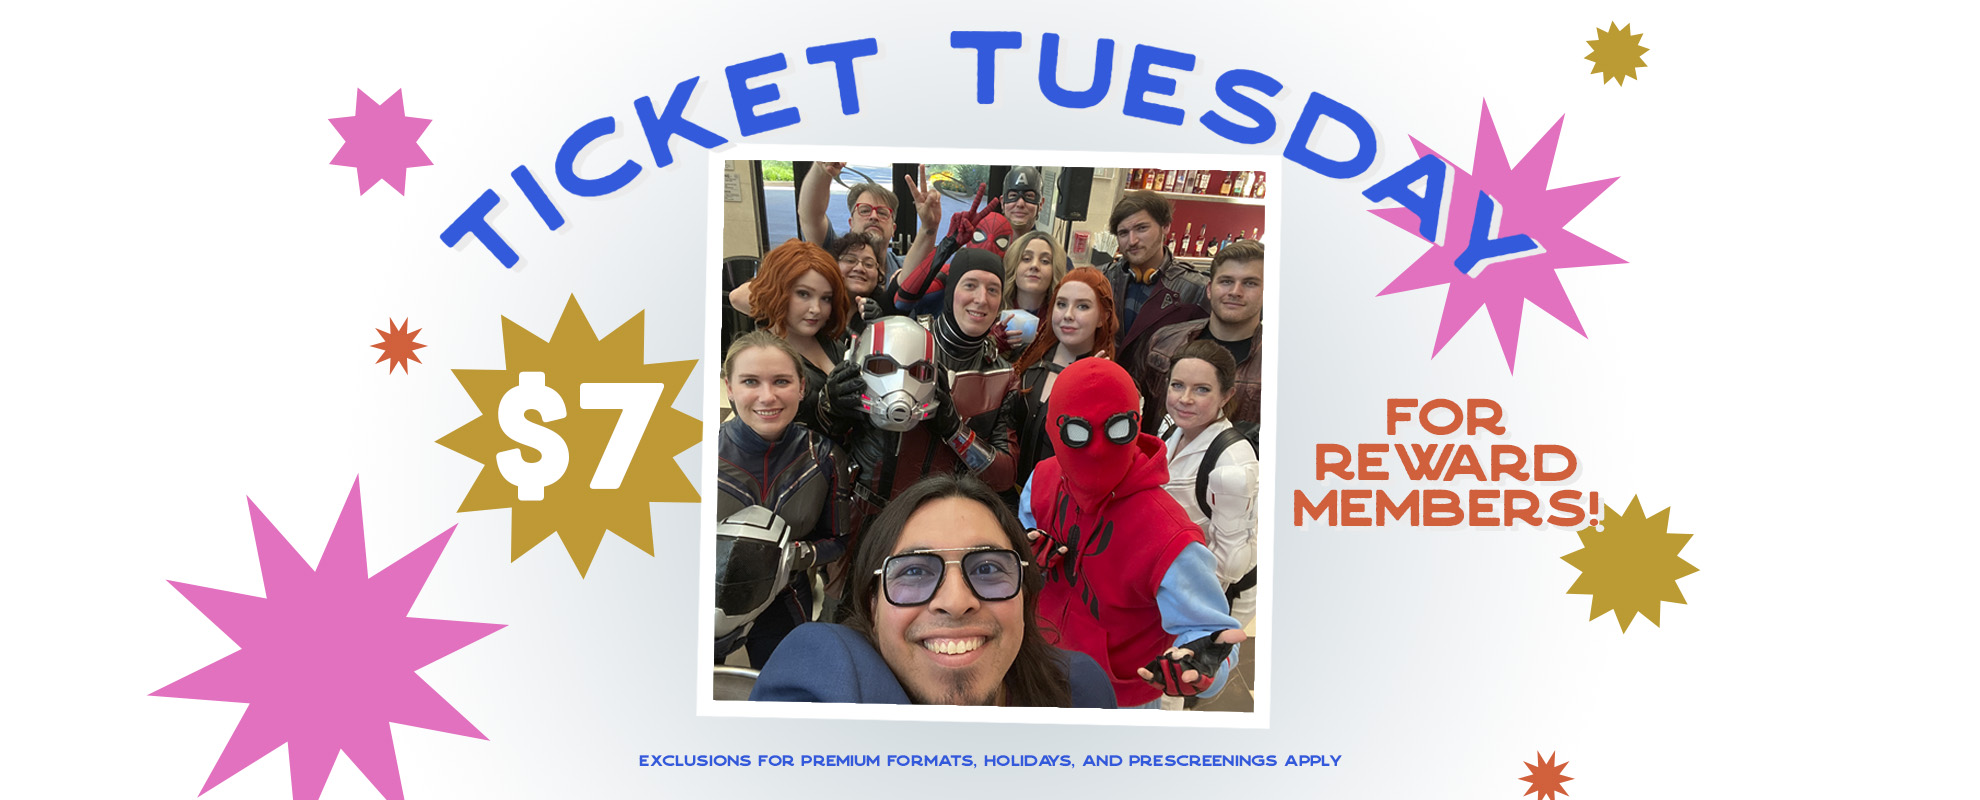 $7.00 Ticket Tuesday image